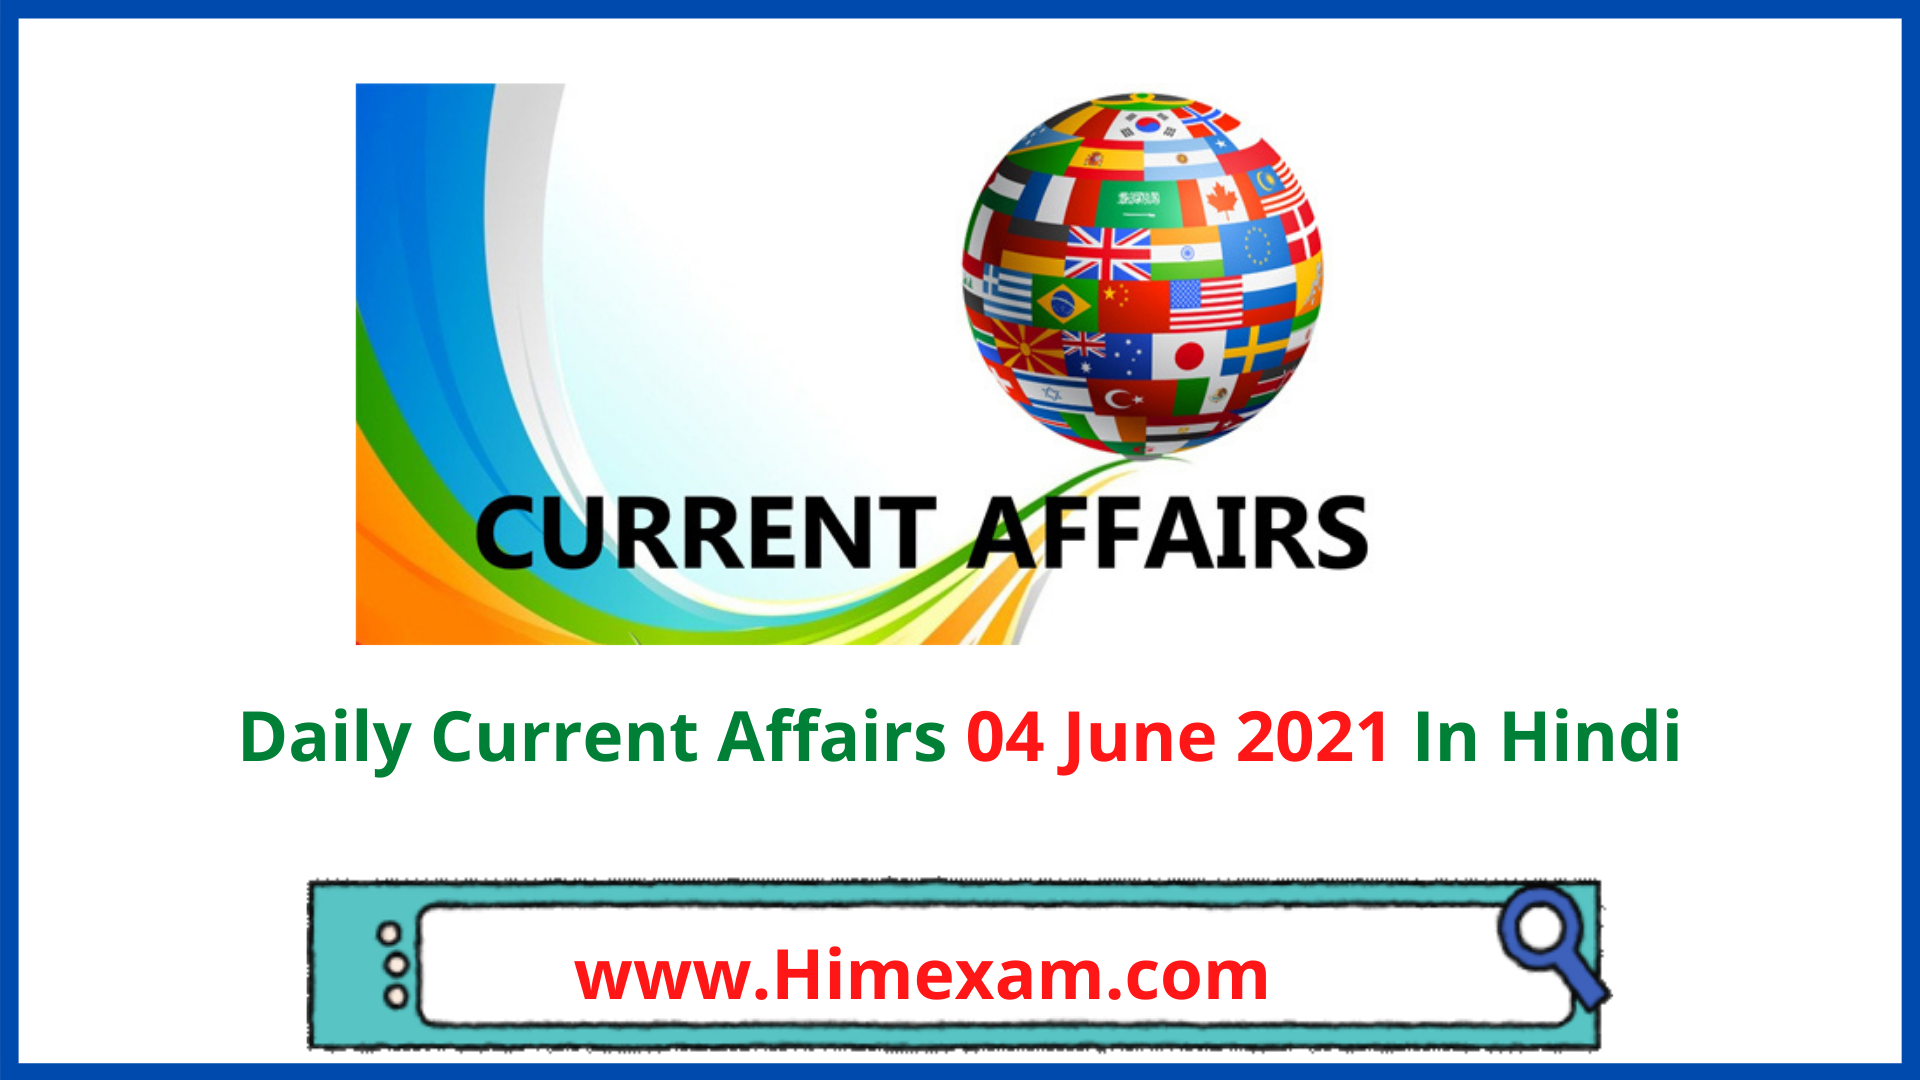 Daily Current Affairs 04 June 2021 In Hindi